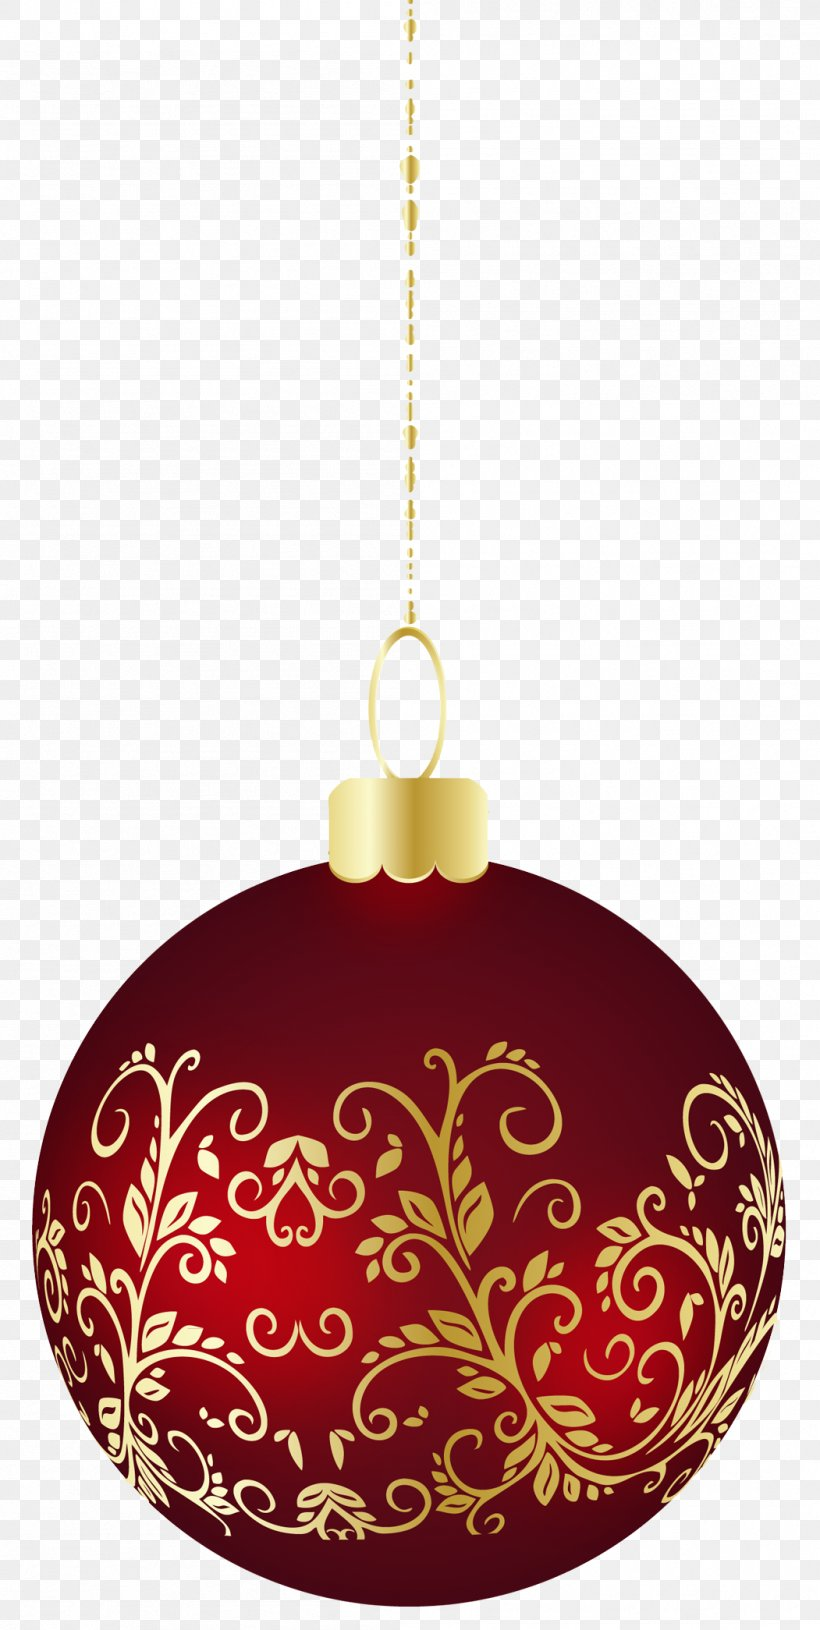 Large Transparent Christmas Ball Ornament Clipart, PNG.